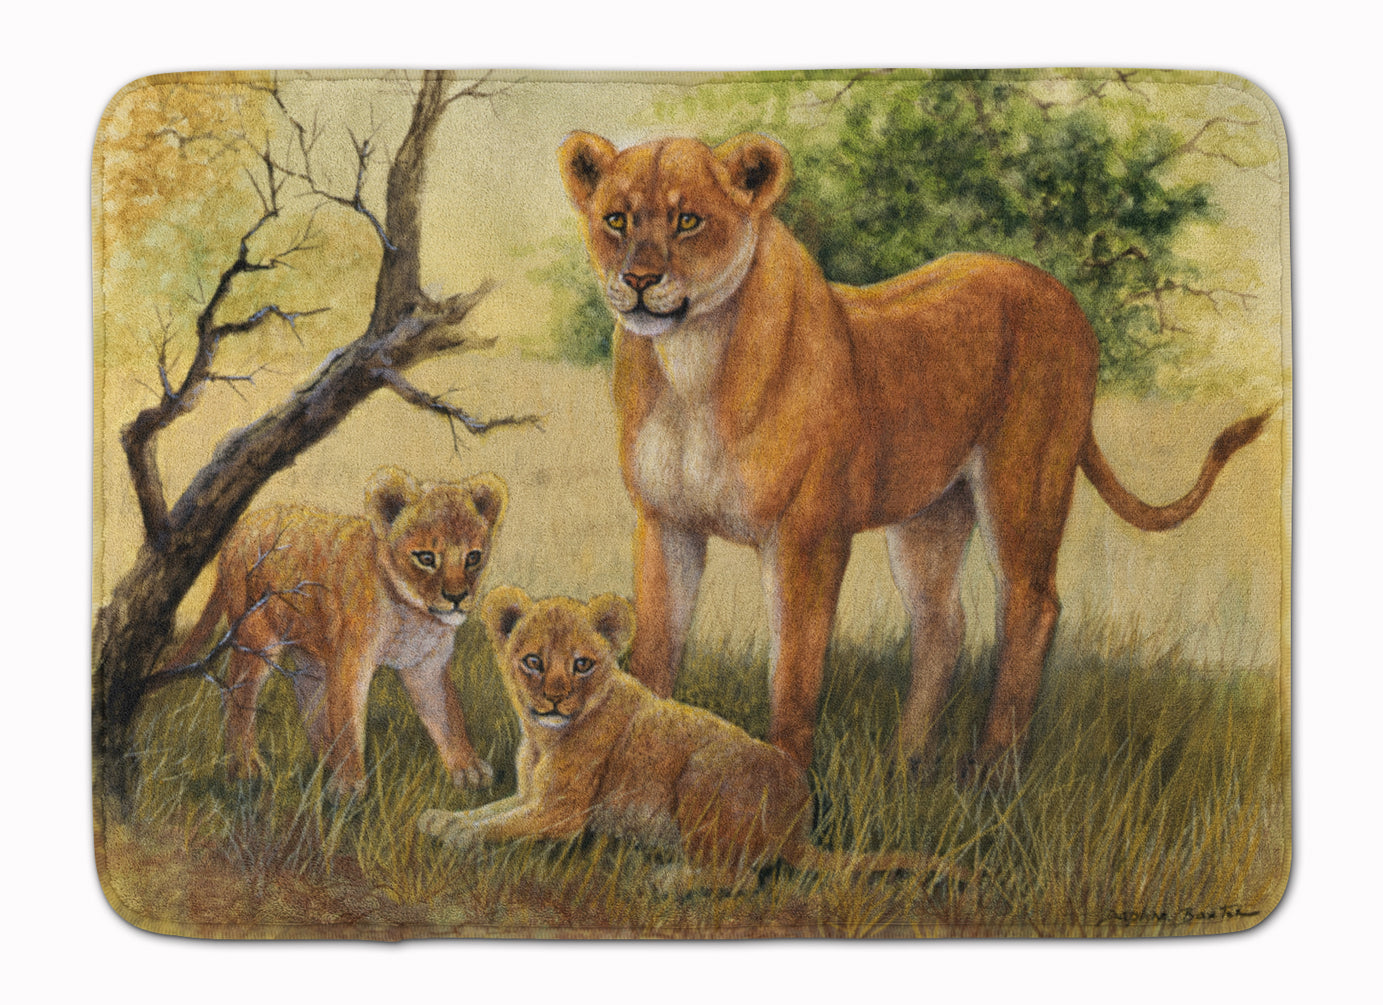 Lion and Cubs by Daphne Baxter Machine Washable Memory Foam Mat BDBA0307RUG by Caroline's Treasures